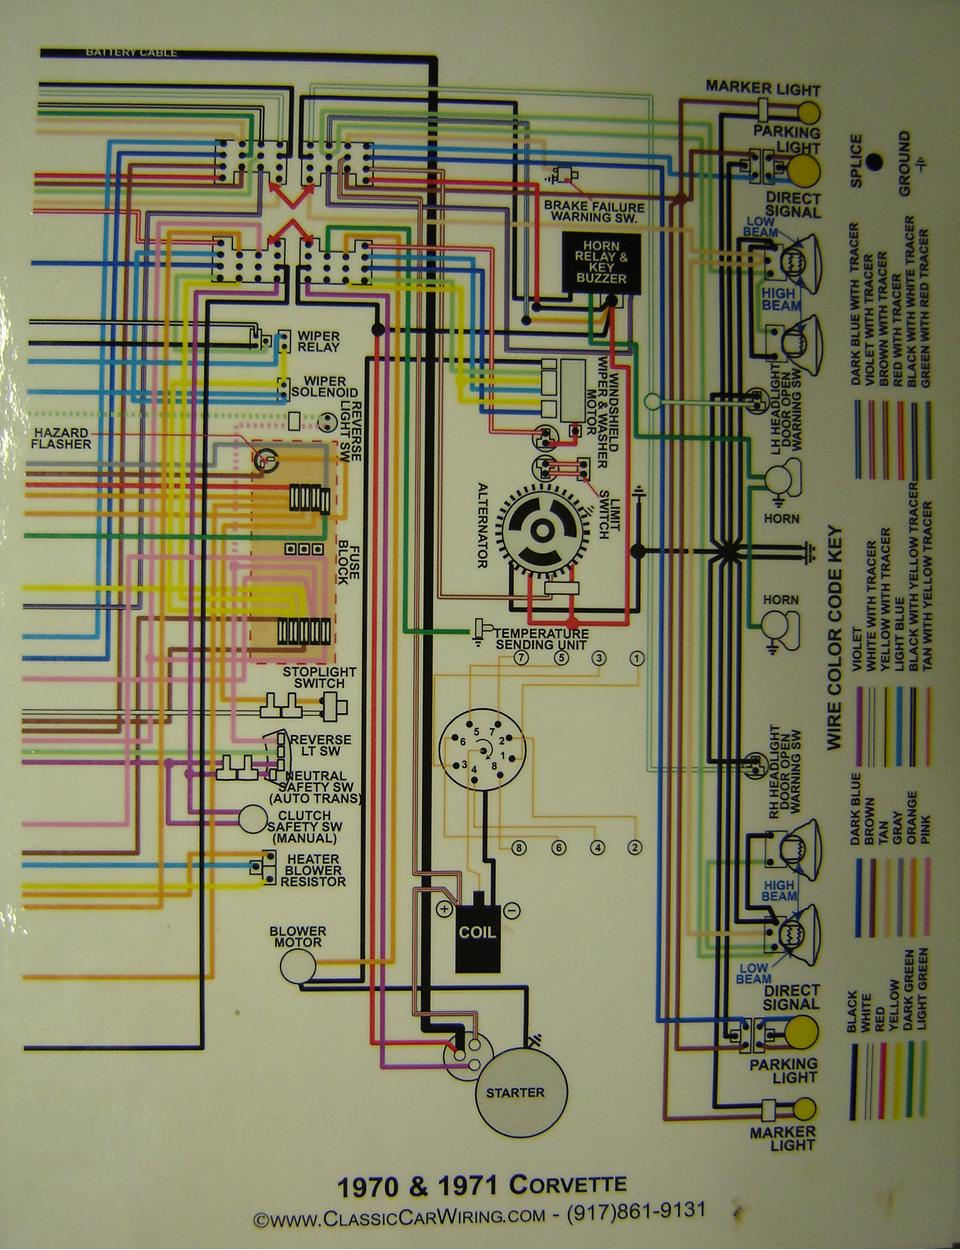 1970 71 corvette color wiring diagram B chevy diagrams 1971 El Camino Wiring Harness at mifinder.co